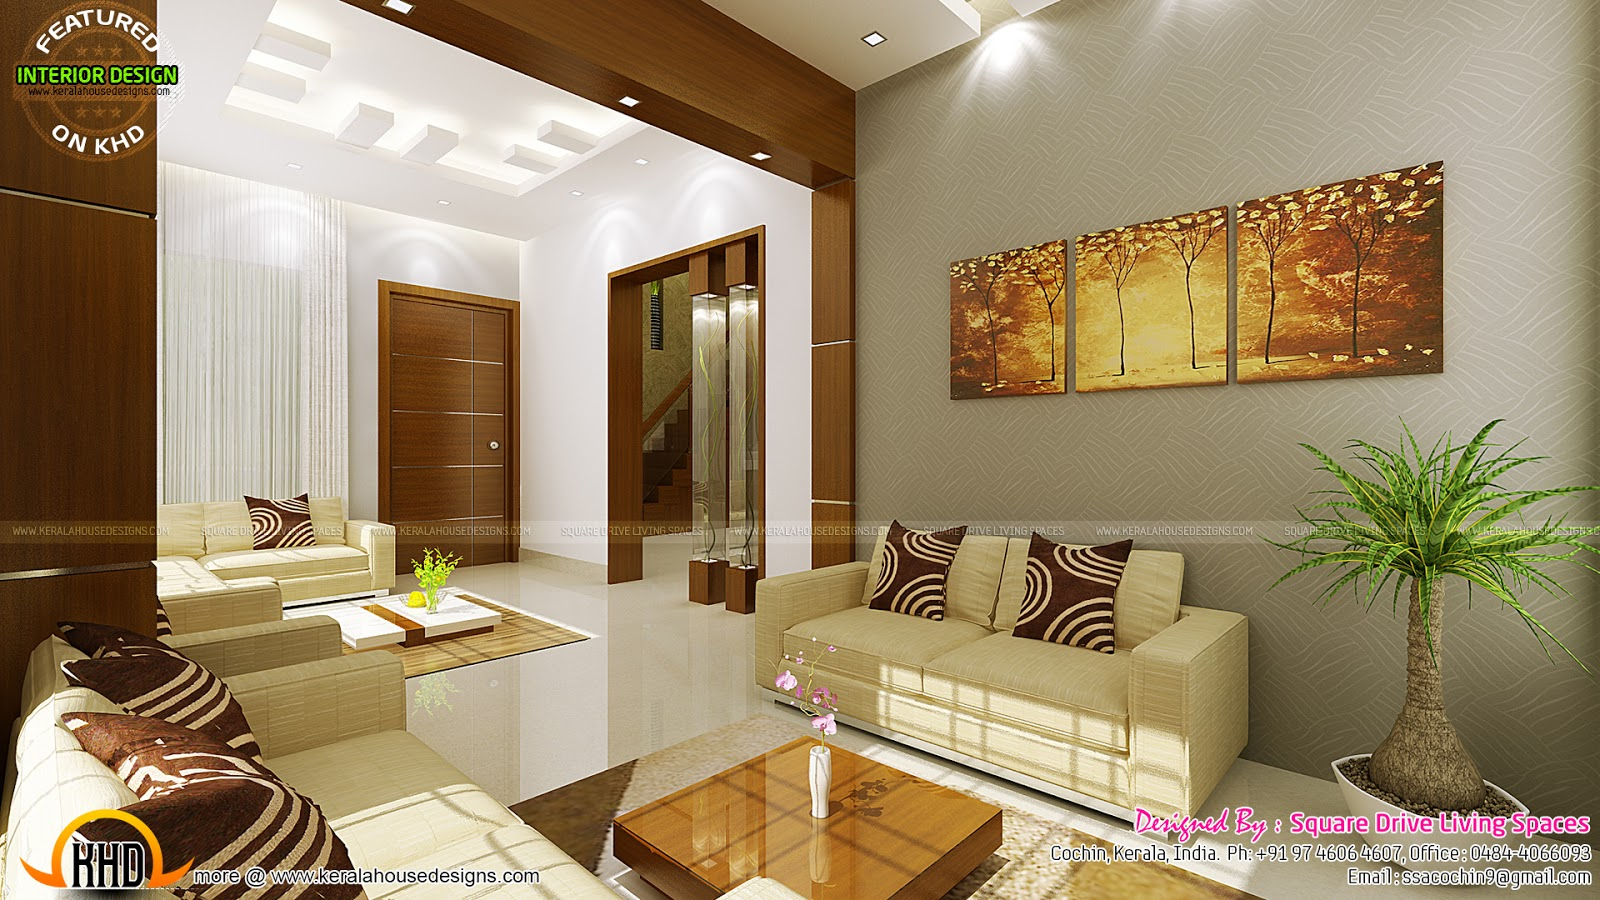 Contemporary kitchen dining and living room kerala home for Home design interior design